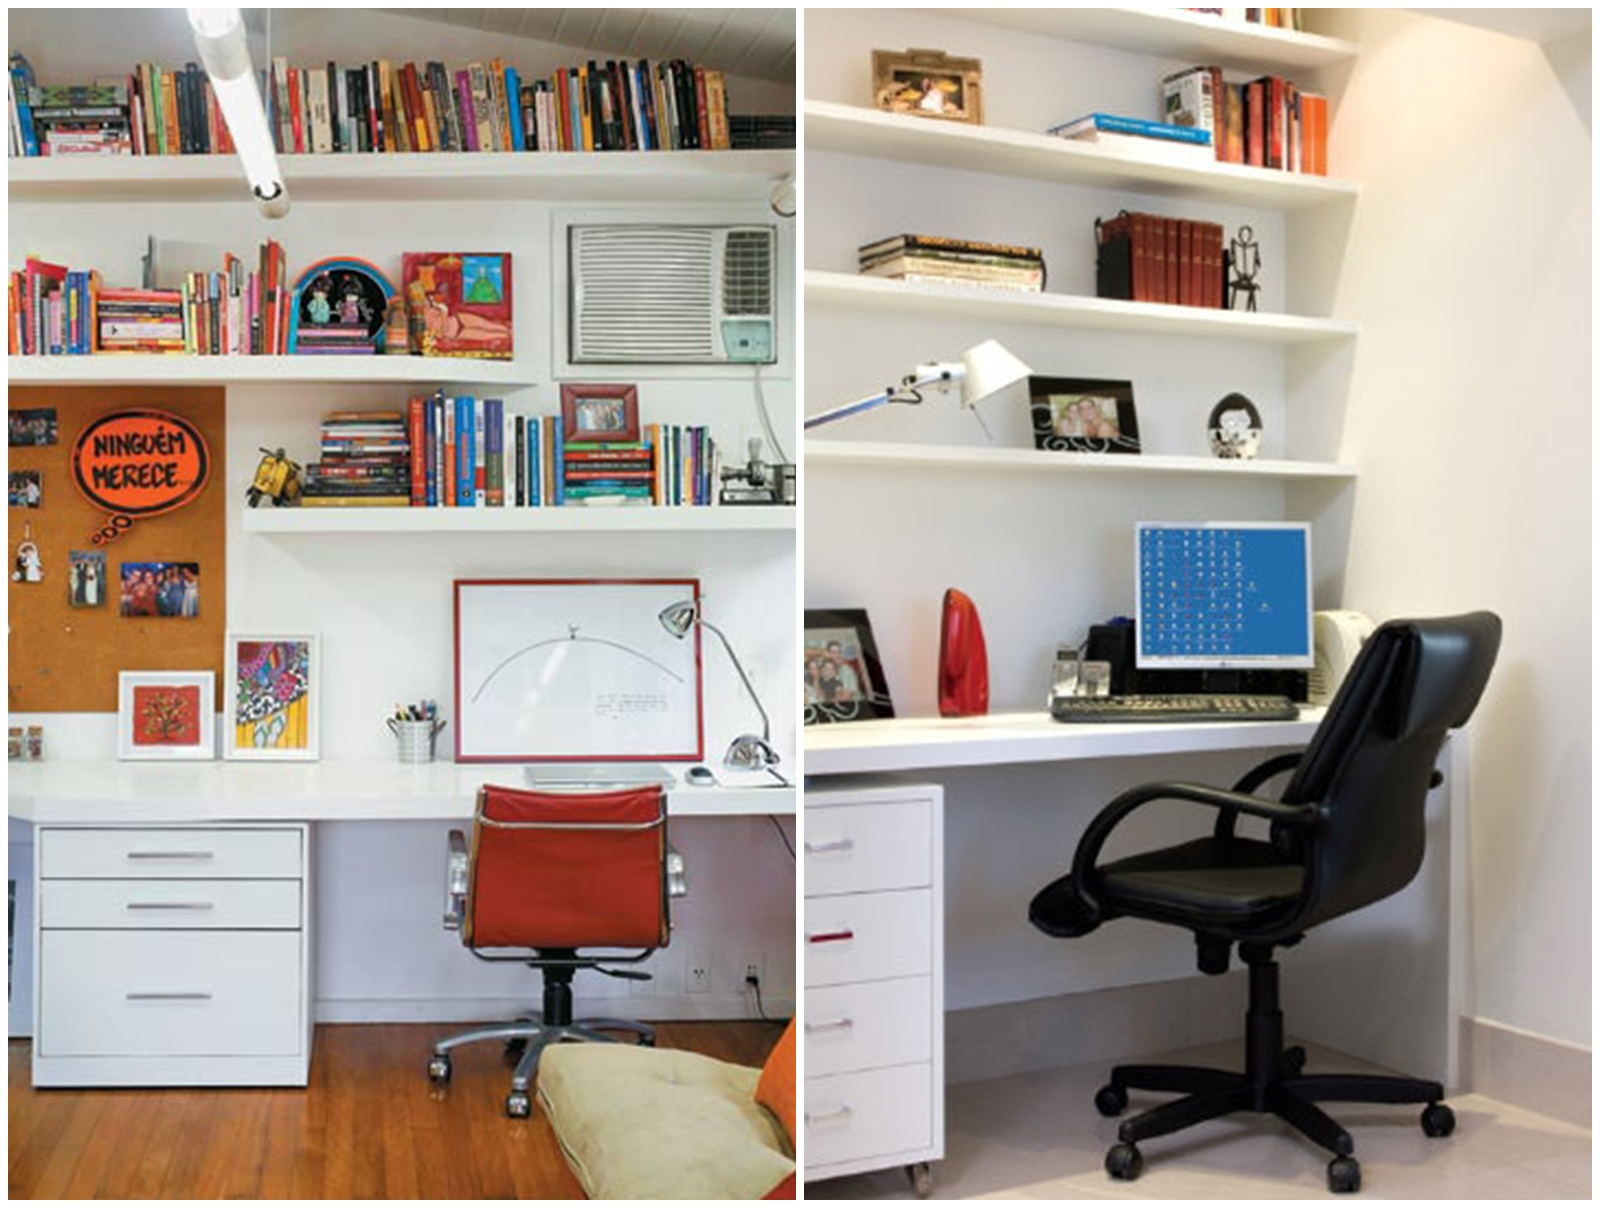 18 Home Office com prateleiras